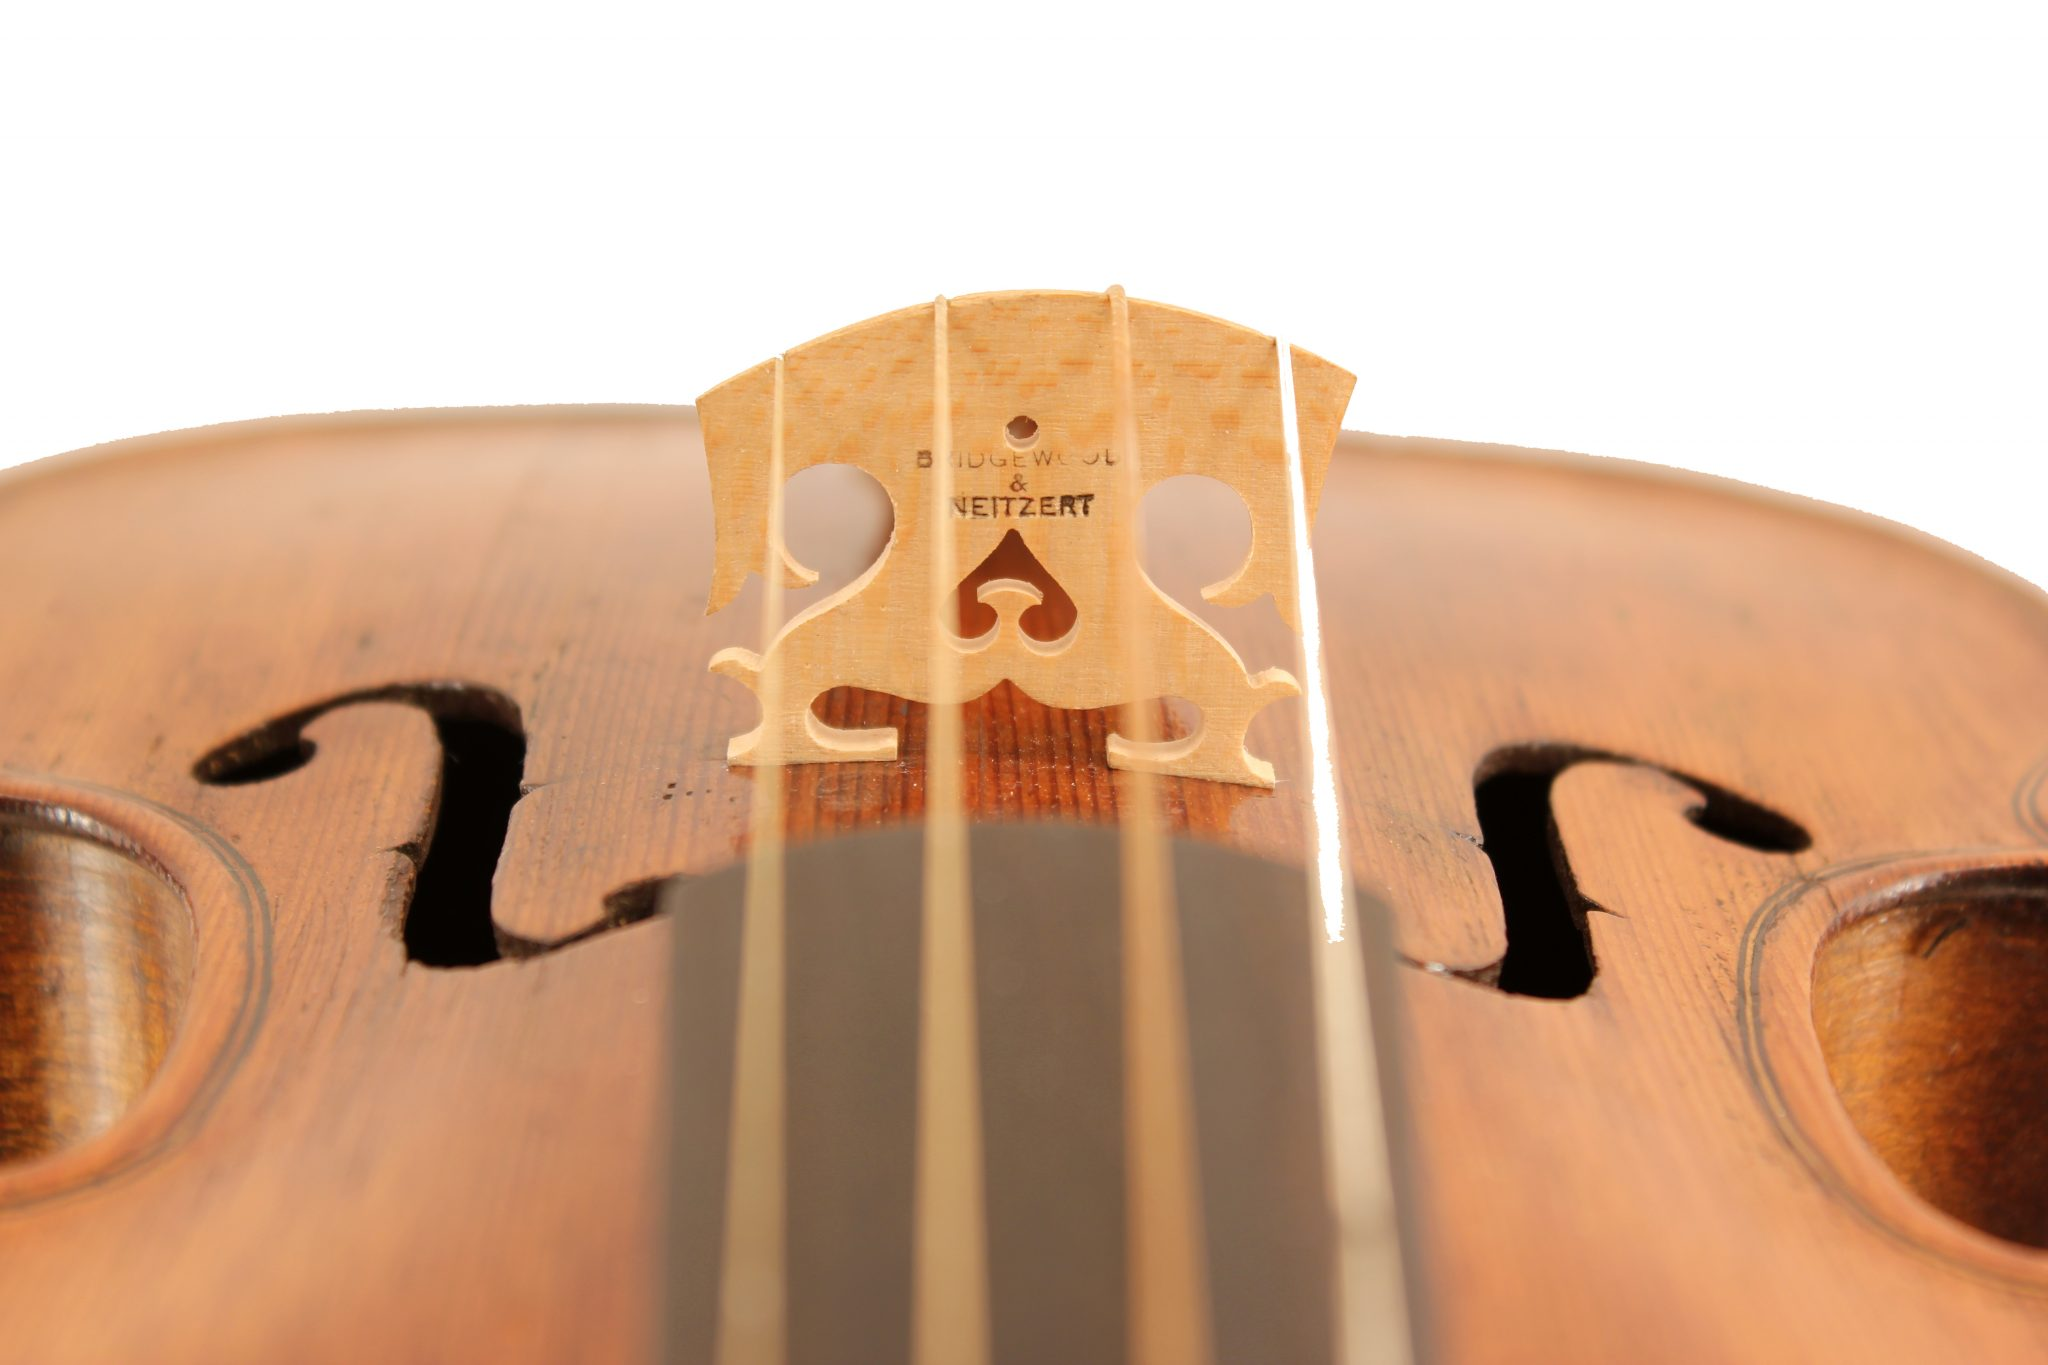 baroque violin by Prosper Cabasse c1780 for sale at Bridgewood and Neitzert London